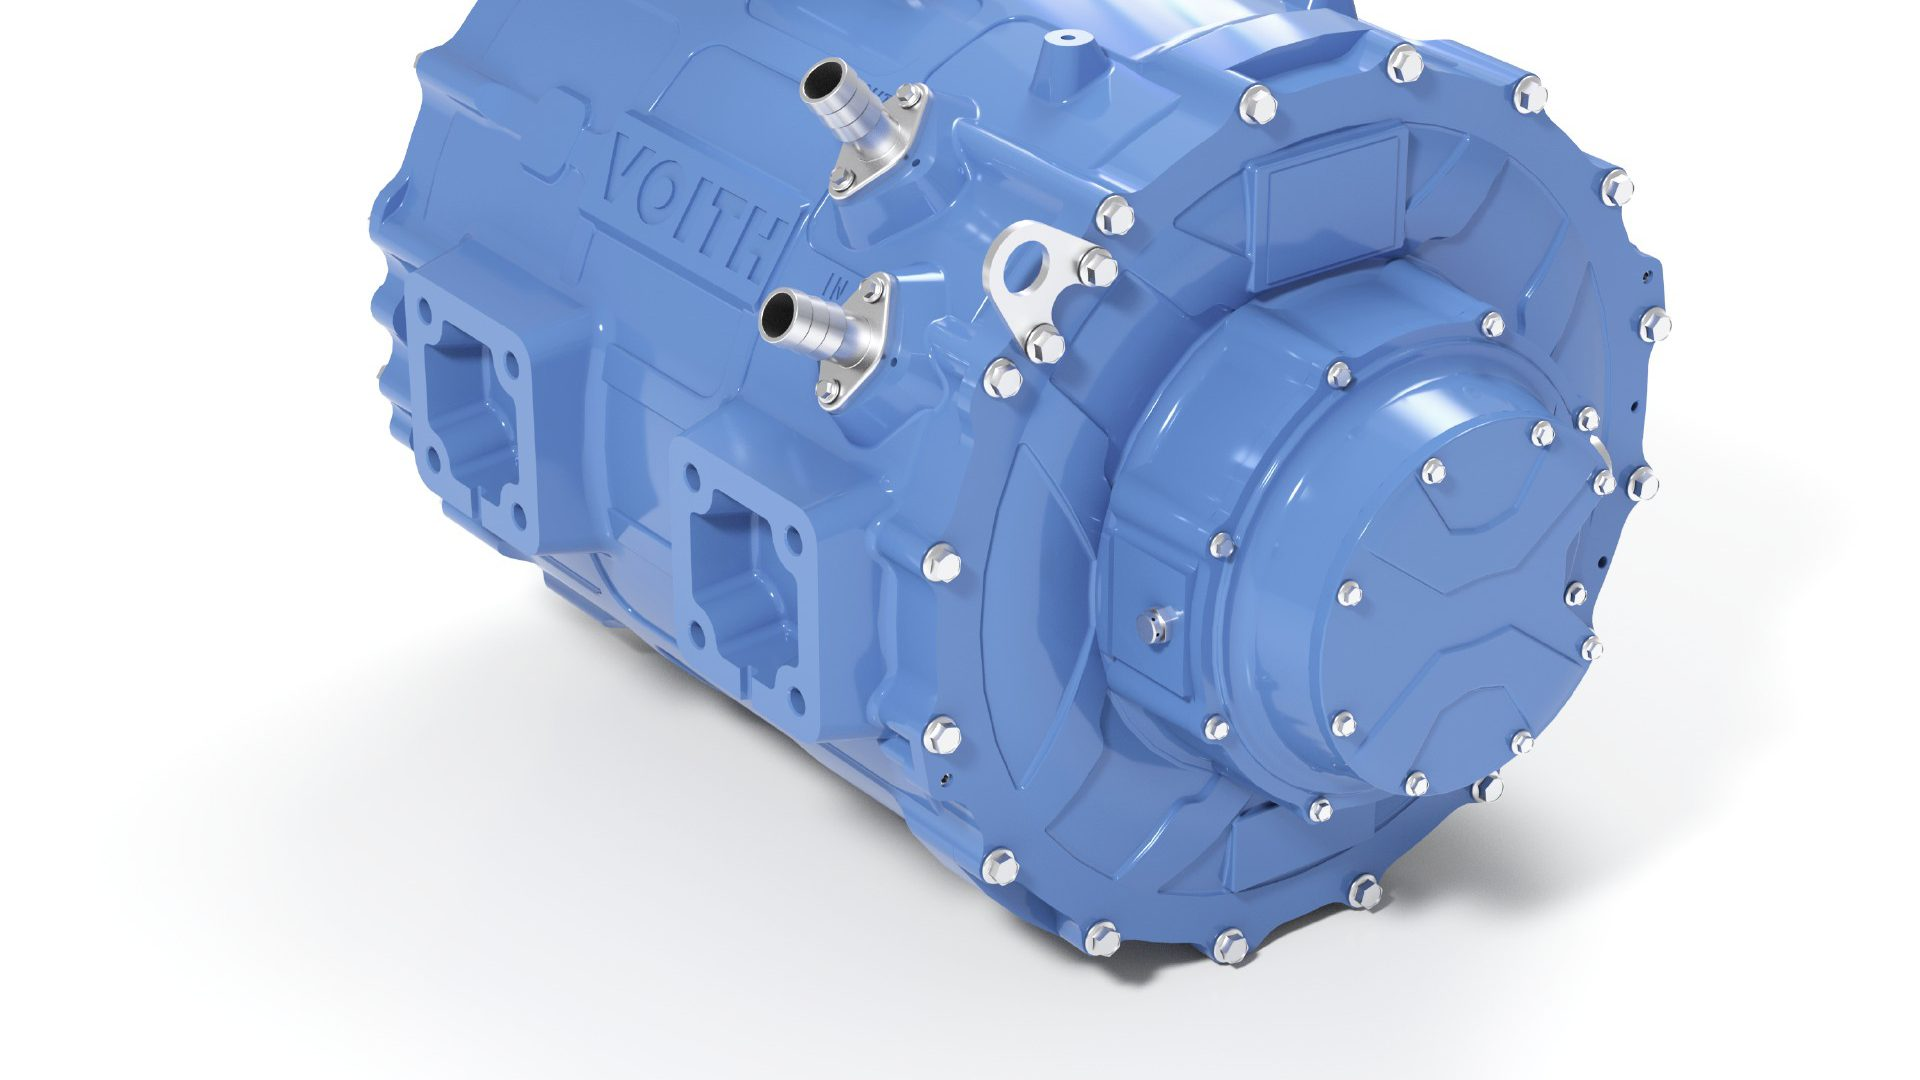 voith electrical drive system